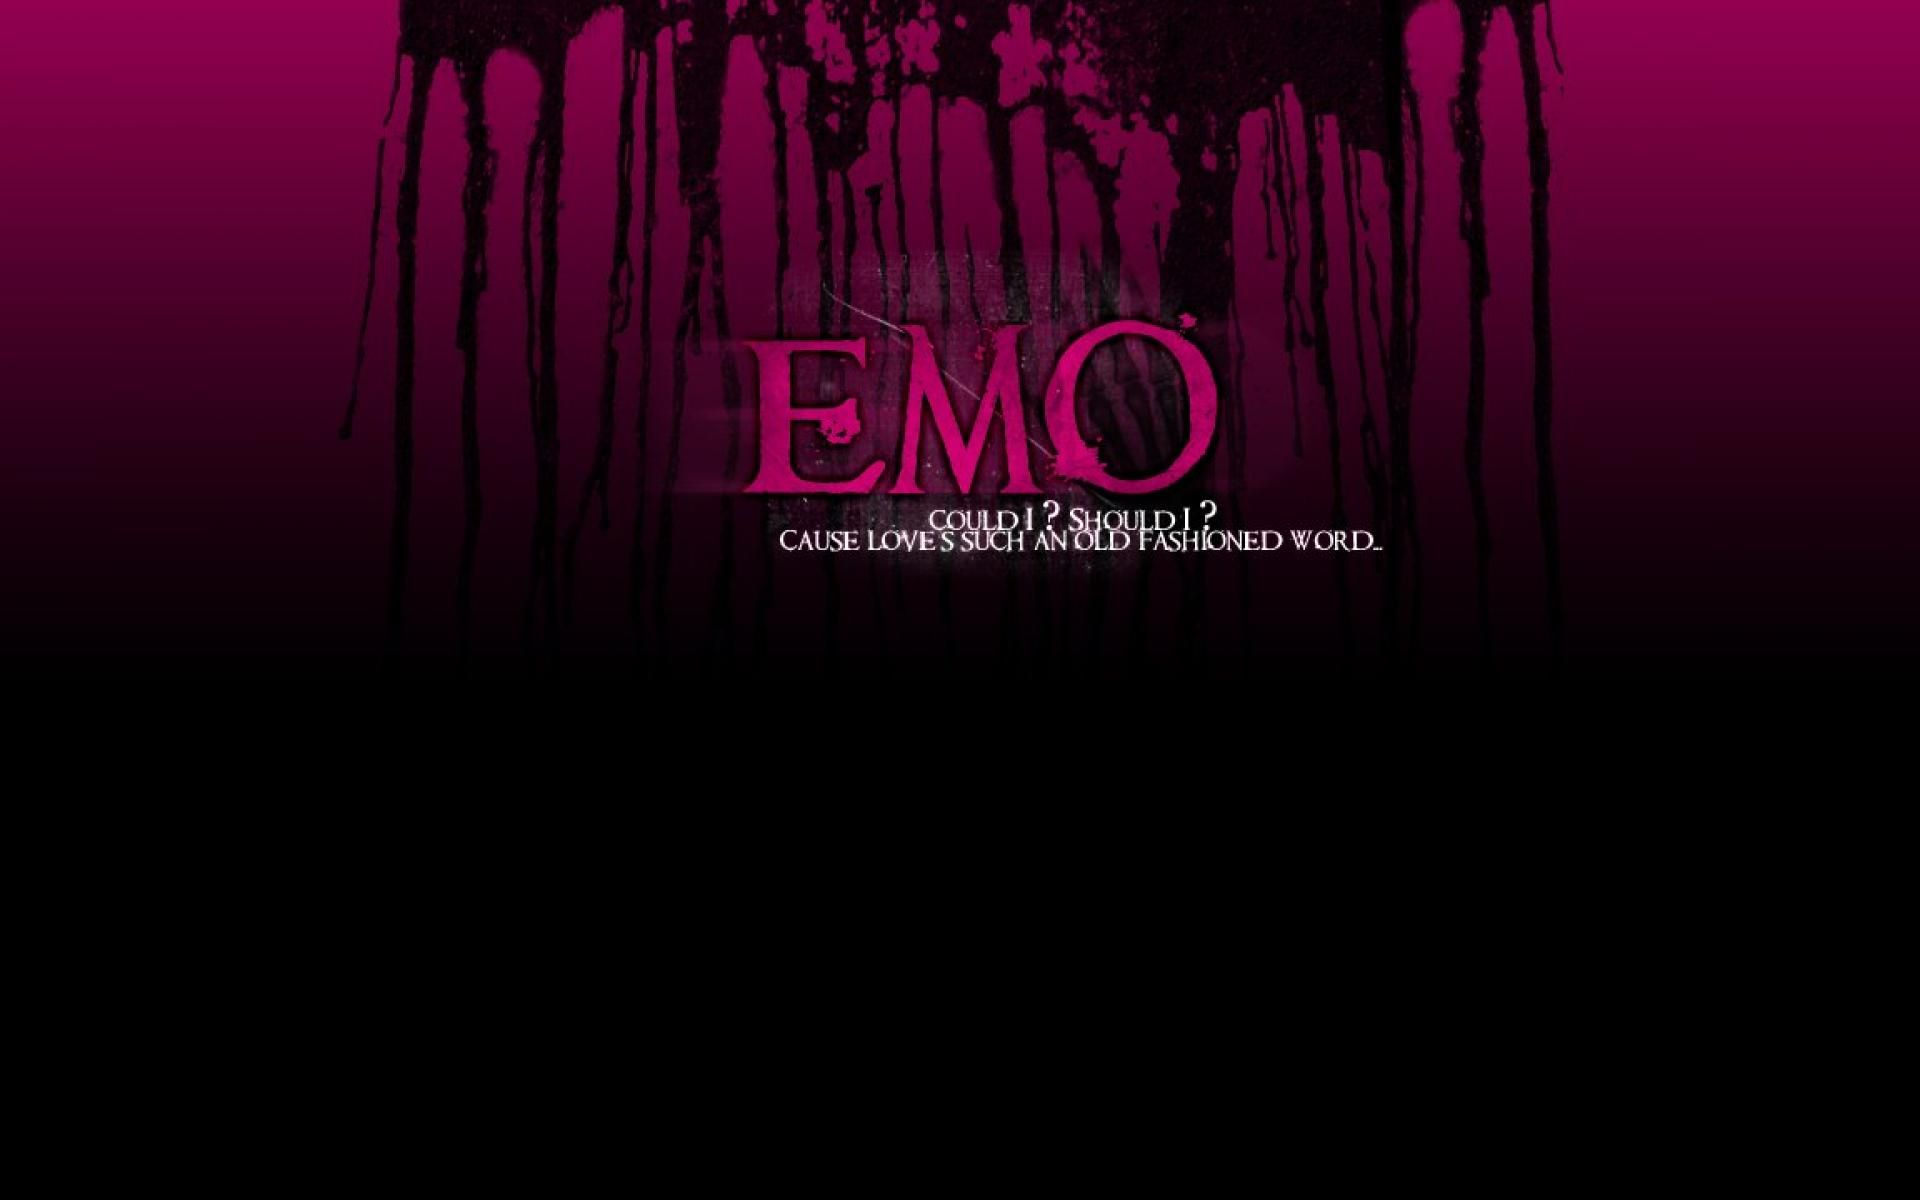 emo live wallpaper android apps on google play 1600a—1200 emo pic wallpapers 44